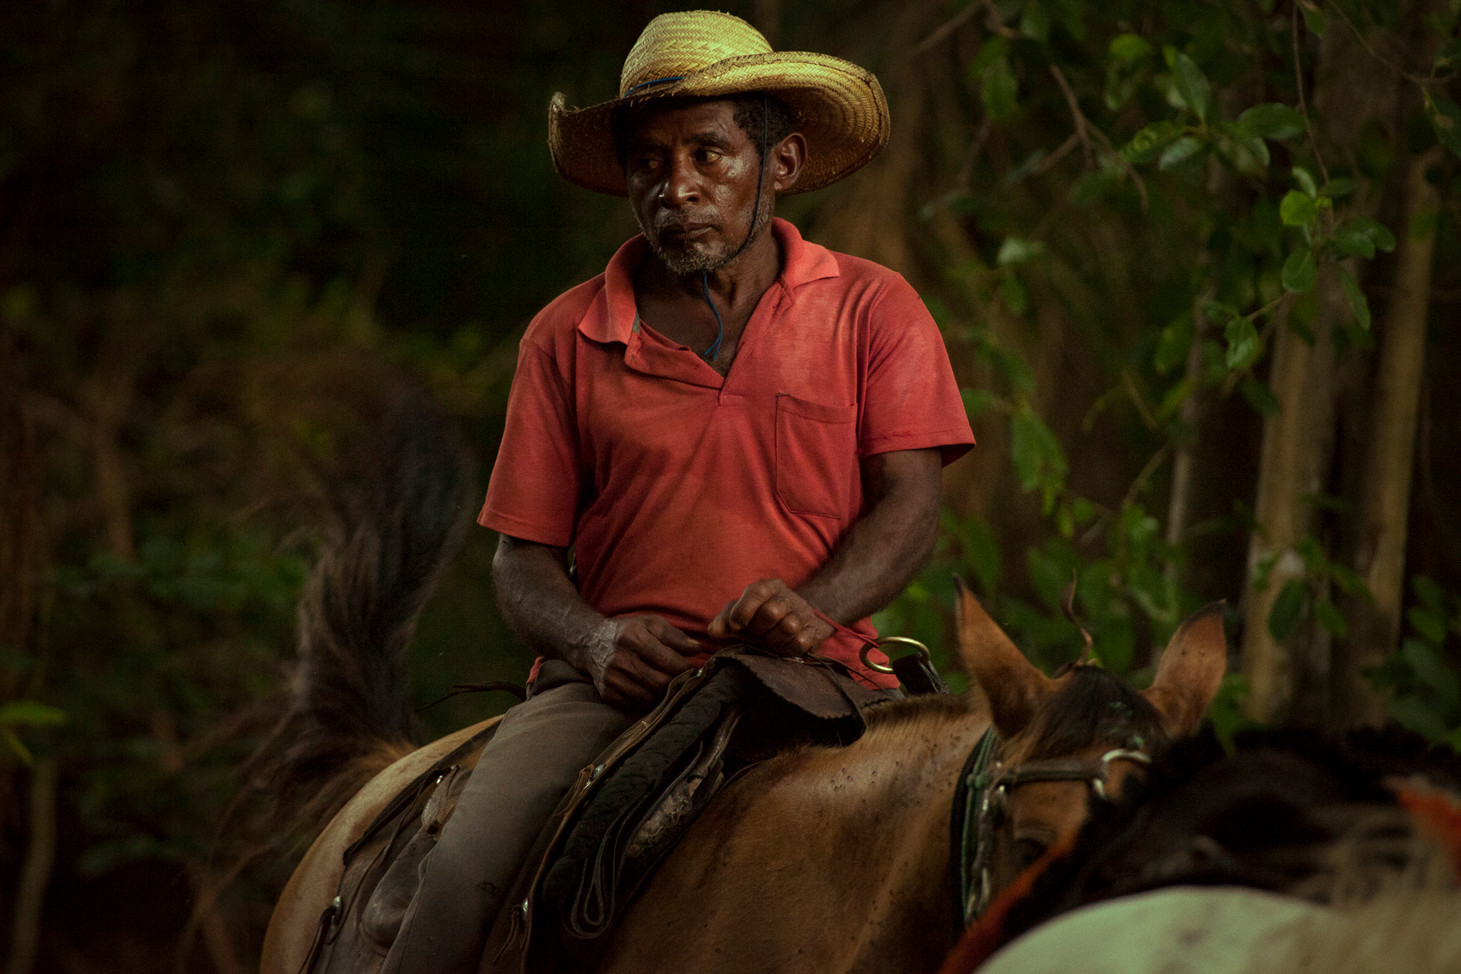 Chilo has been working as a Vaquero (Cowboy) all his life. He spends most of his days in isolation, patroling isolated parts of the Pantanal for poaching and illegal cattle raising.  He visits the local village Poconé once every 3-4 months.